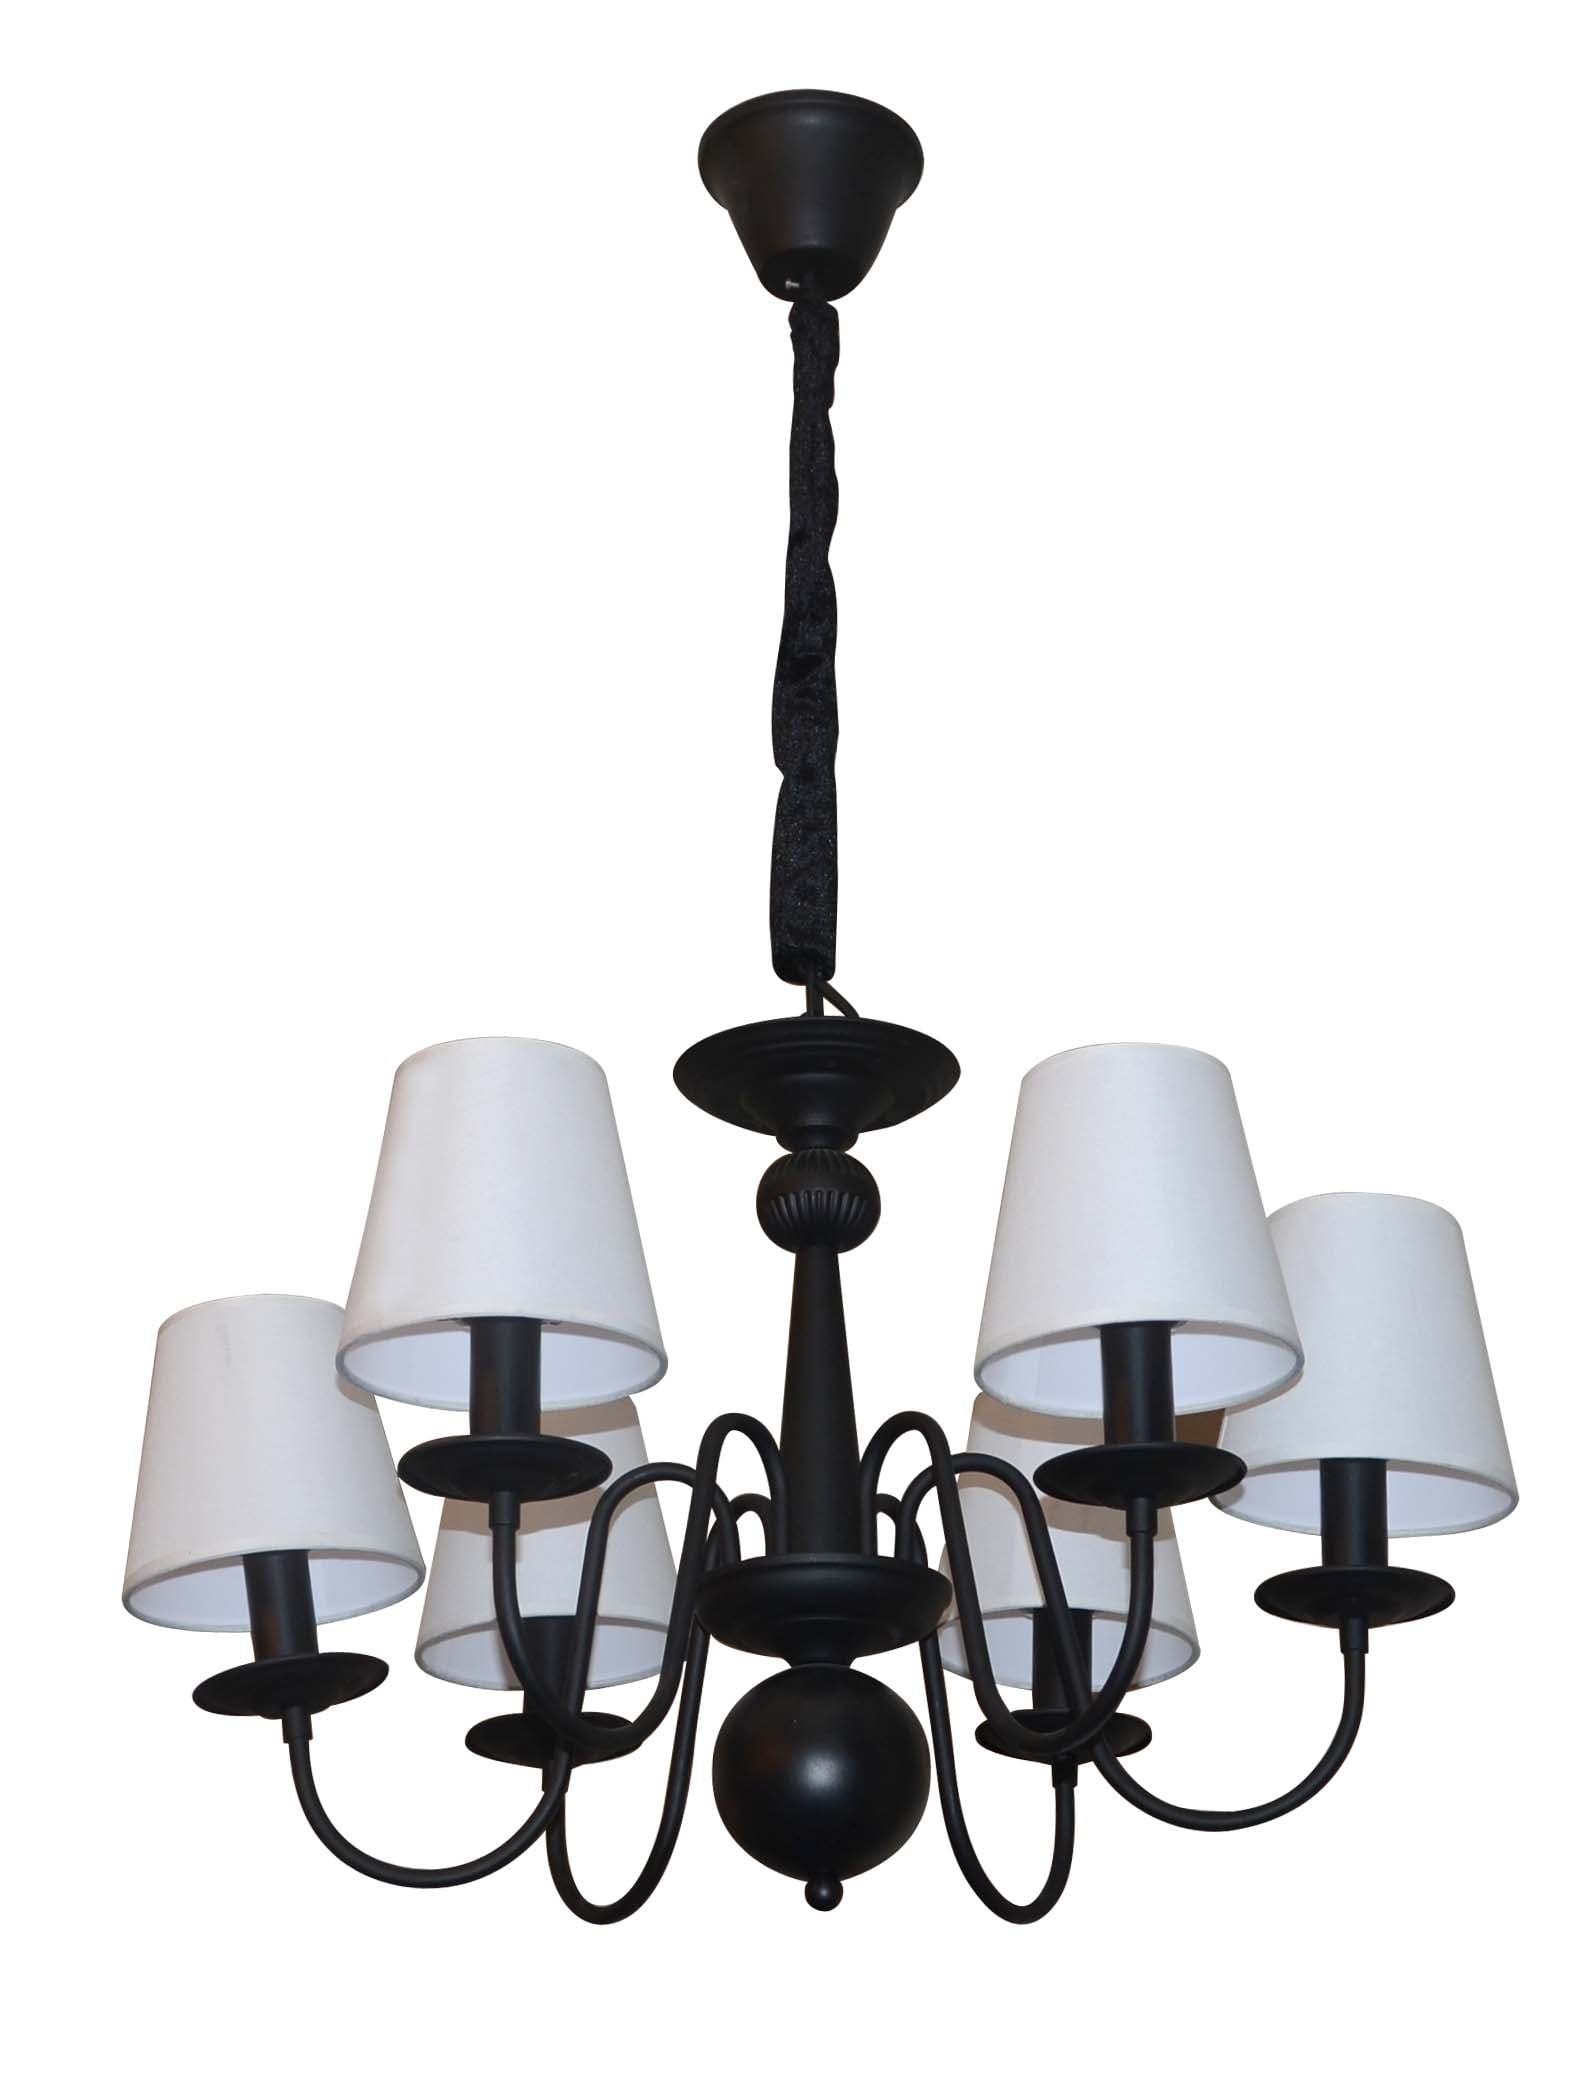 Black Verona chandelier with 6 white lampshades